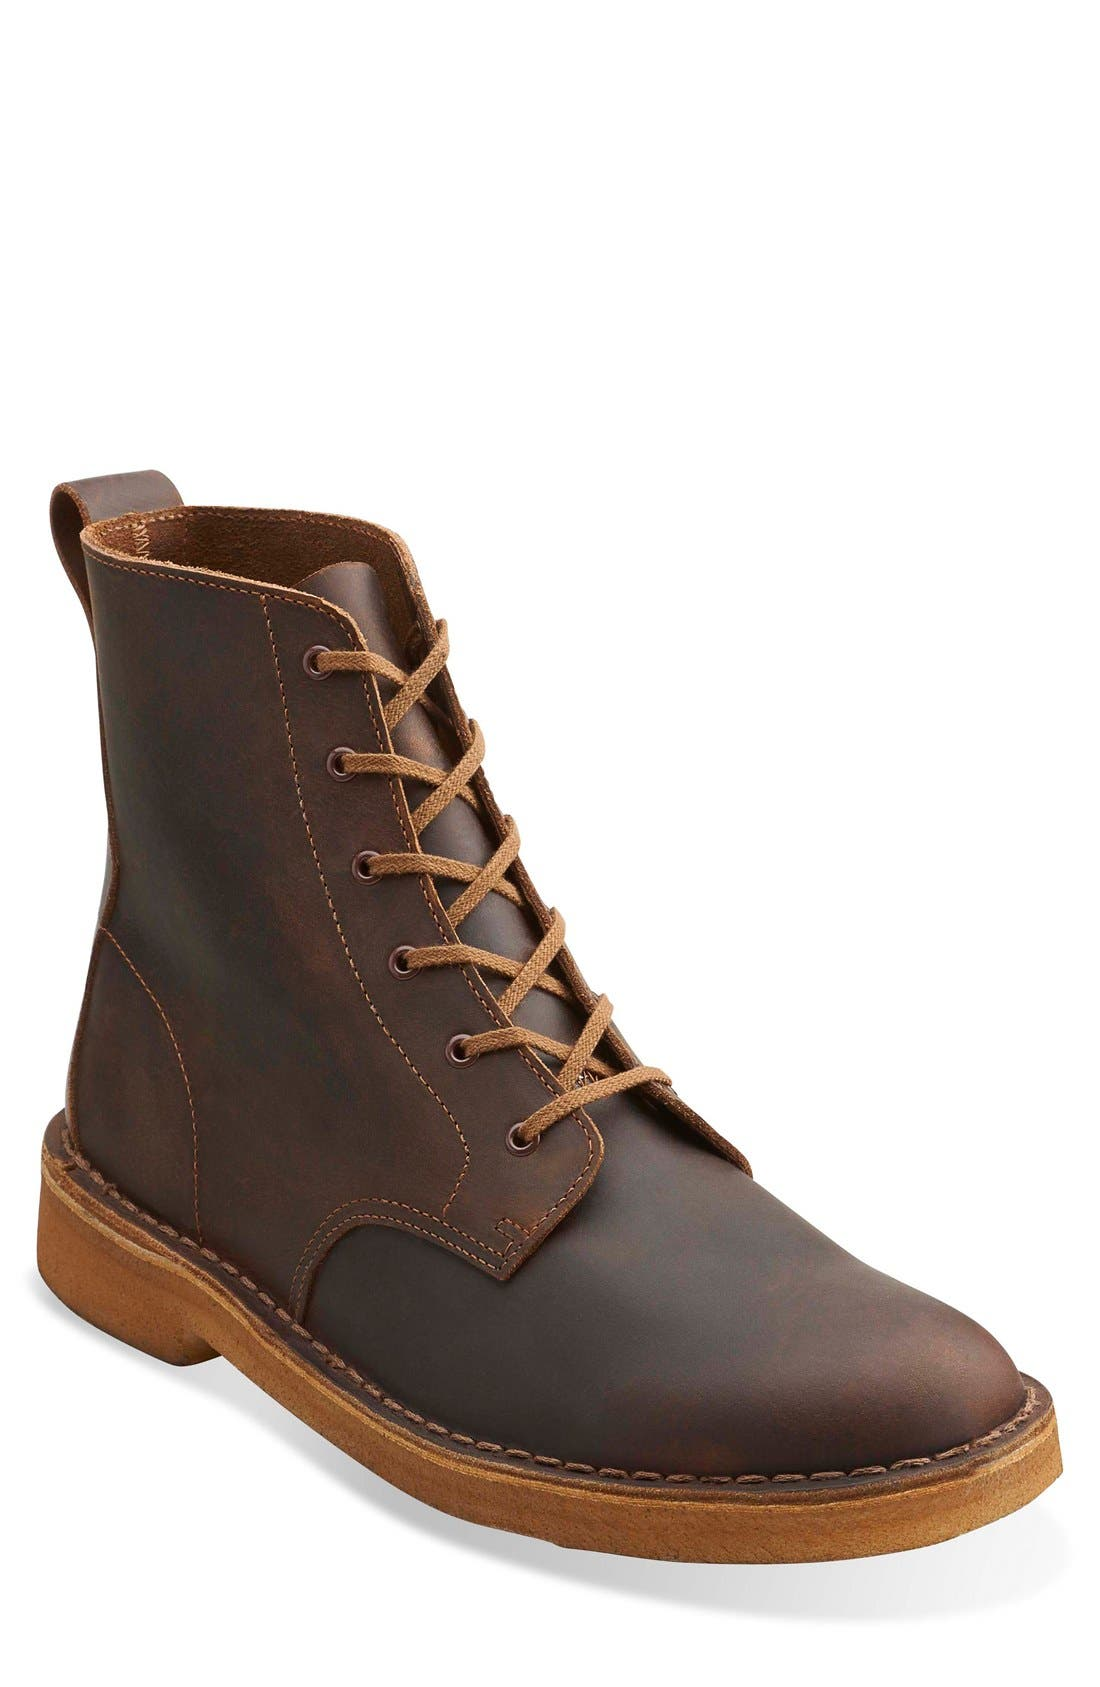 'Desert Mali' Boot,                         Main,                         color, Beeswax Leather